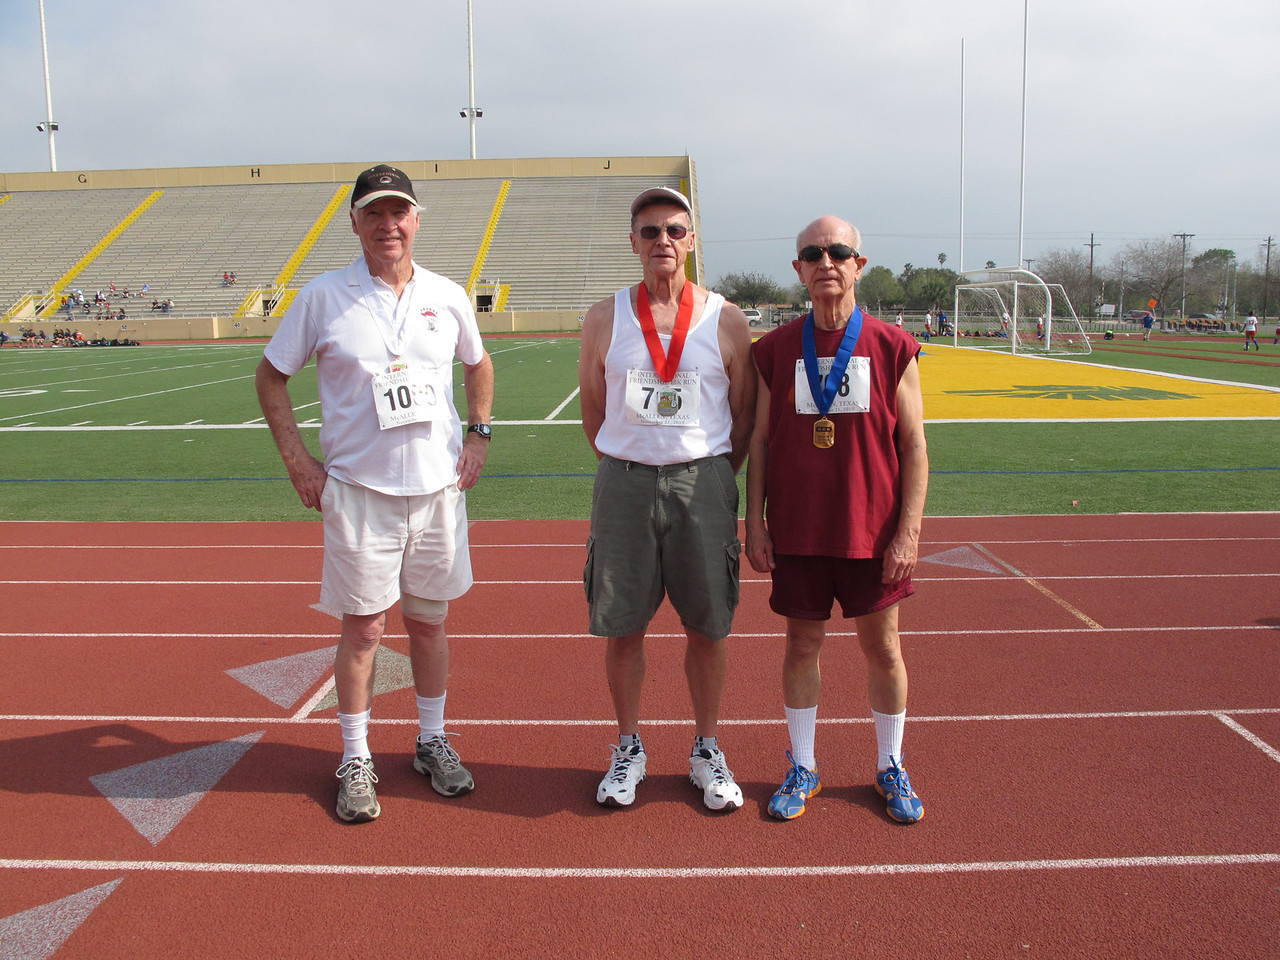 Racewalk Men 75-79 (L-R) 3rd Place - Allan Savage (Texan Mobile), 2nd Place - Kenneth Hart (Enchanted Valley), 1st Place - Norman Izard (Independent)